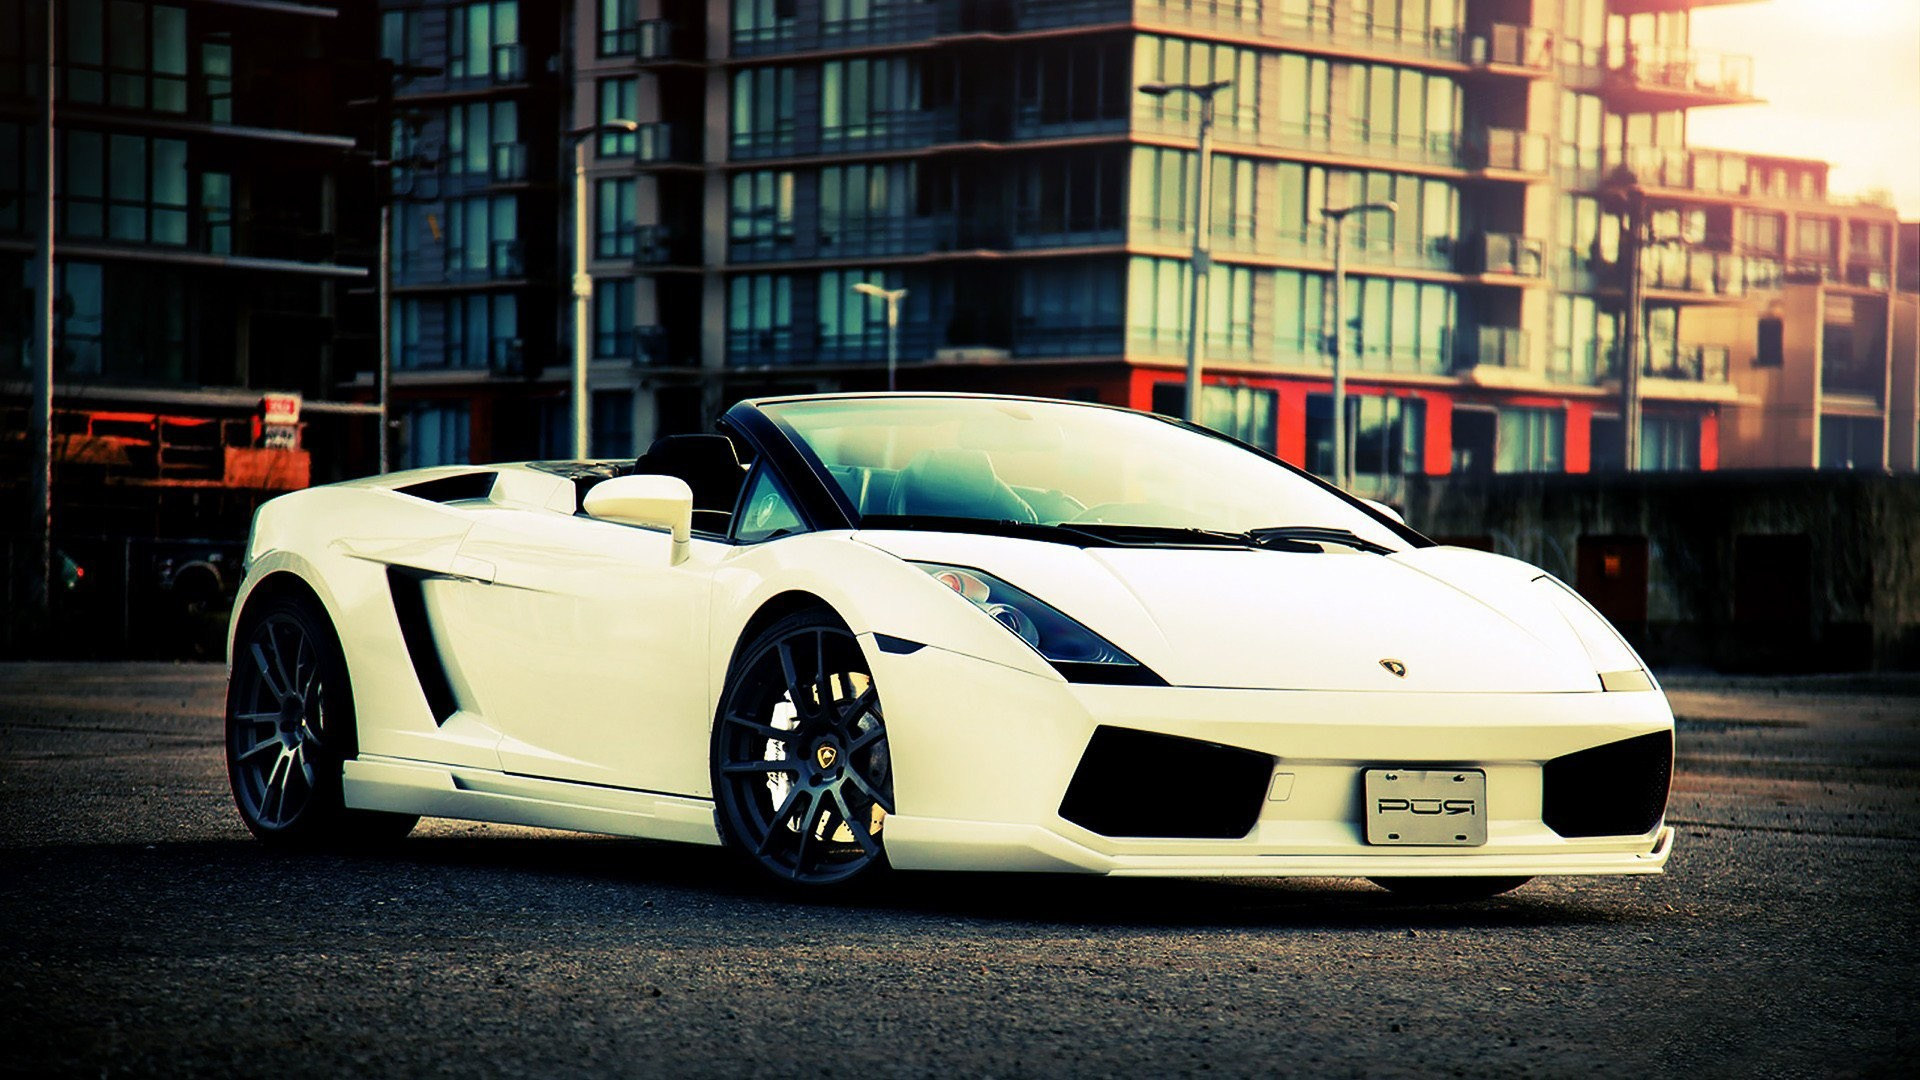 Lamborghini Gallardo Wallpaper HD 74 Images